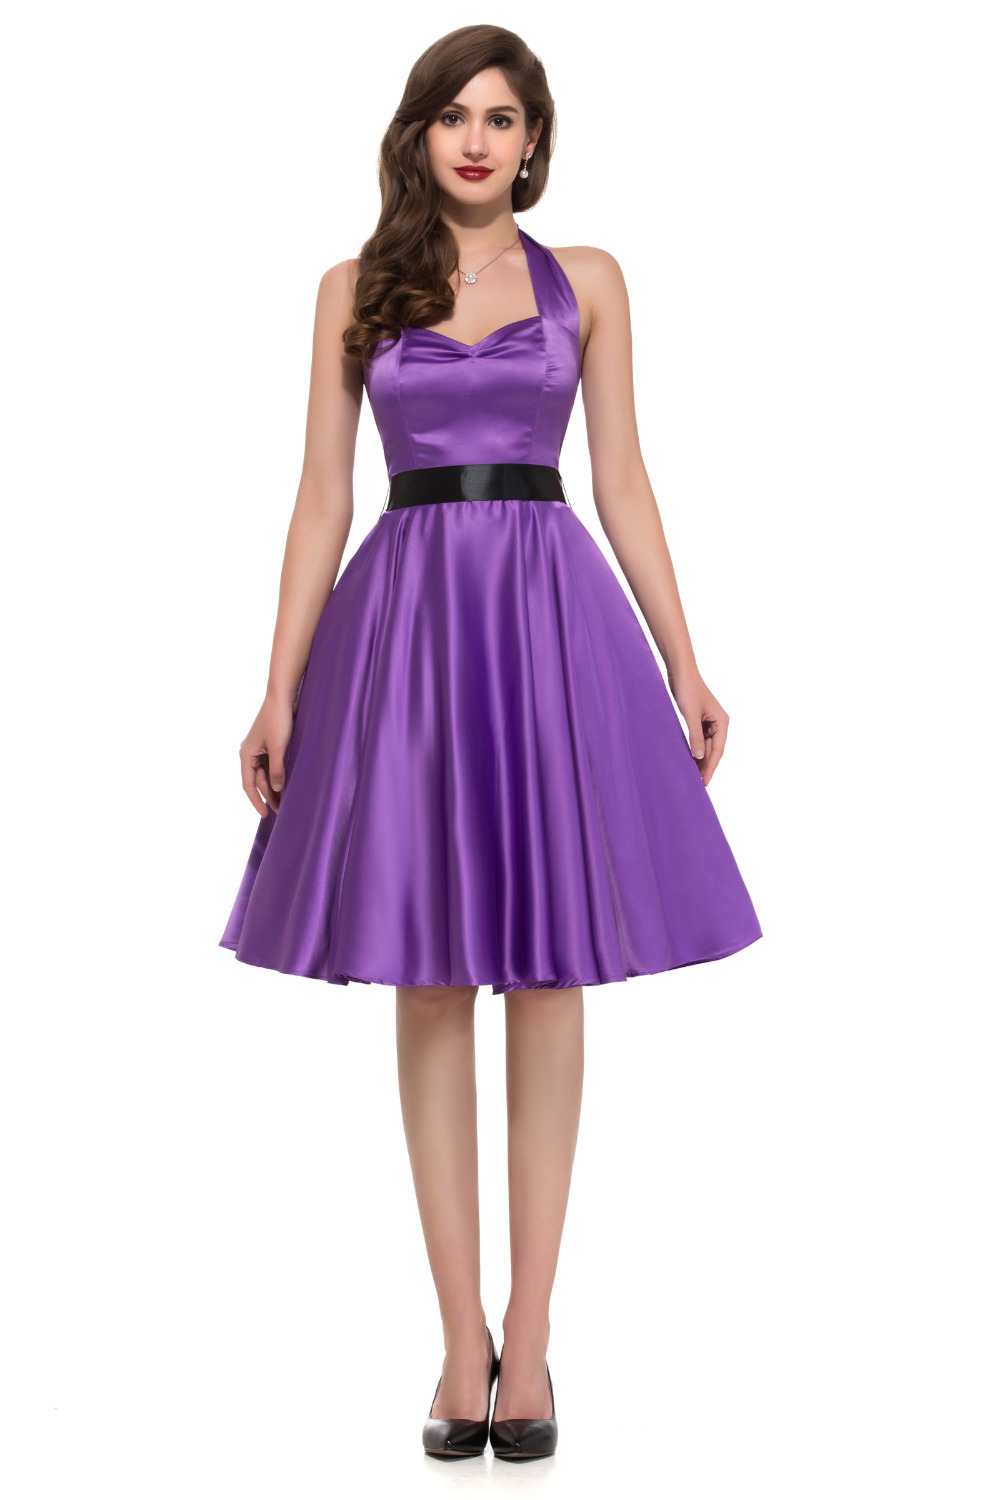 Purple Dresses For Women - Dress Xy